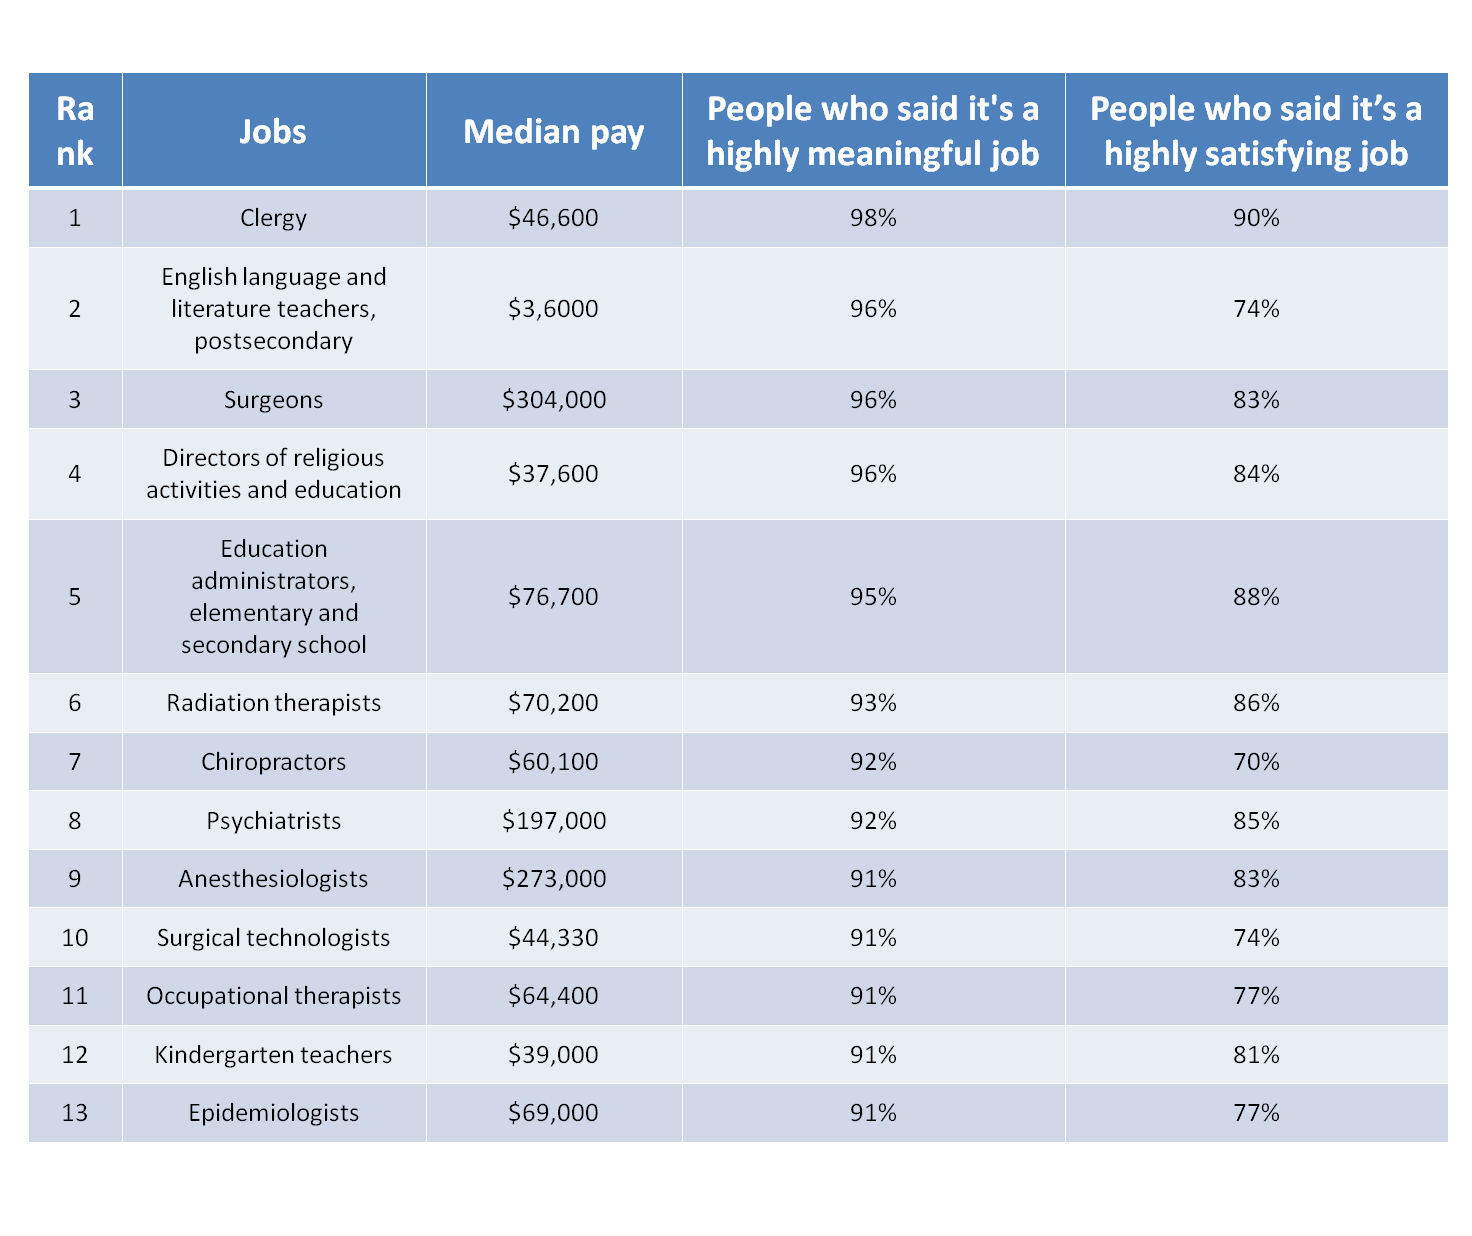 Surgical Technologists One Of the Most Meaningful Jobs in America 2020